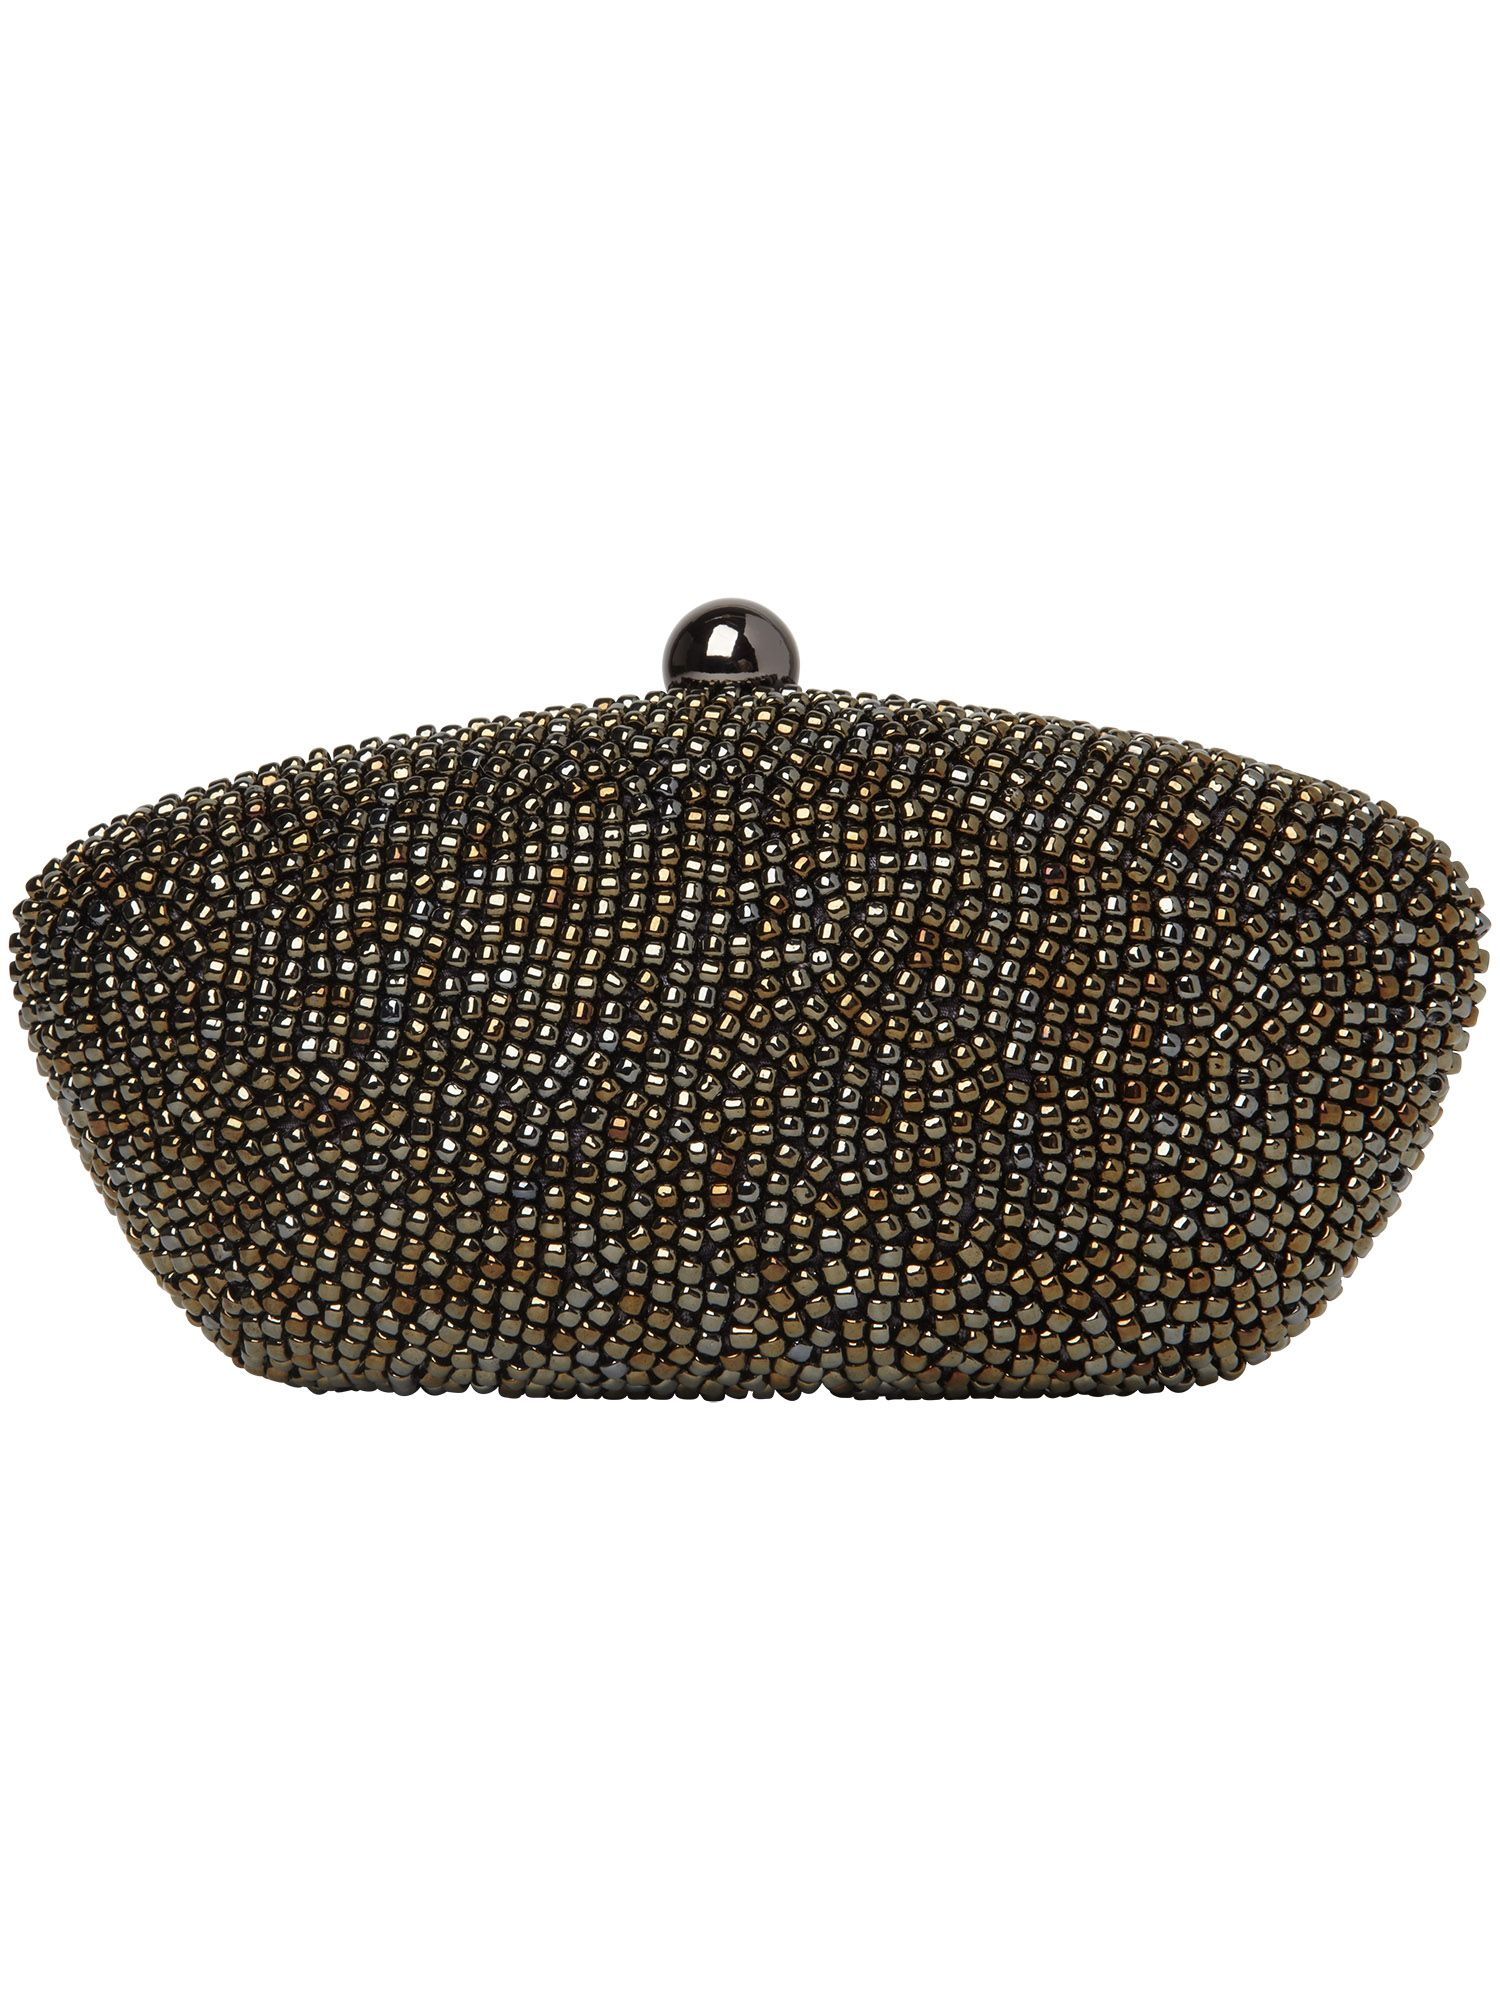 Beverley beaded box clutch bag